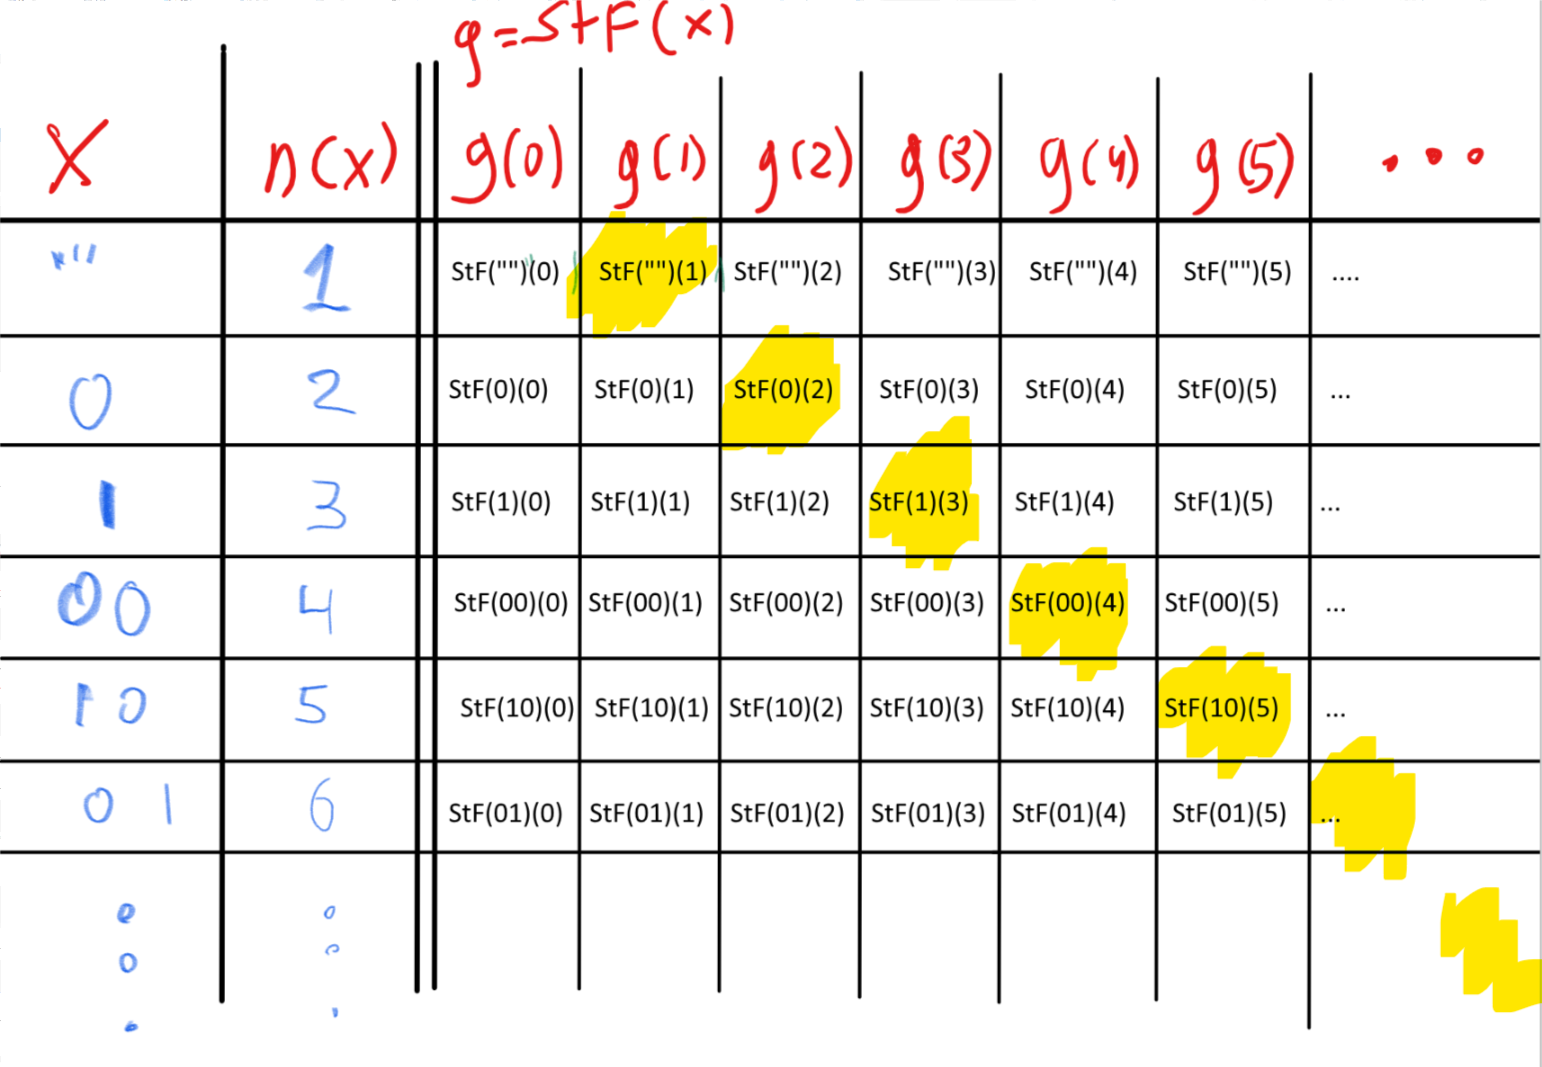 """We construct a function f^* such that f^* \neq StF(x) for every x\in \{0,1\}^* by ensuring that f^*(n(x)) \neq StF(x)(n(x)) for every x\in \{0,1\}^*. We can think of this as building a table where the columns correspond to numbers m\in \N and the rows correspond to x\in \{0,1\}^* (sorted according to n(x)). If the entry in the x-th row and the m-th column corresponds to g(m)) where g=StF(x) then f^* is obtained by going over the """"diagonal"""" elements in this table (the entries corresponding to the x-th row and n(x)-th column) and enduring that f^*(x)(n(x)) \neq StF(x)(n(x))."""